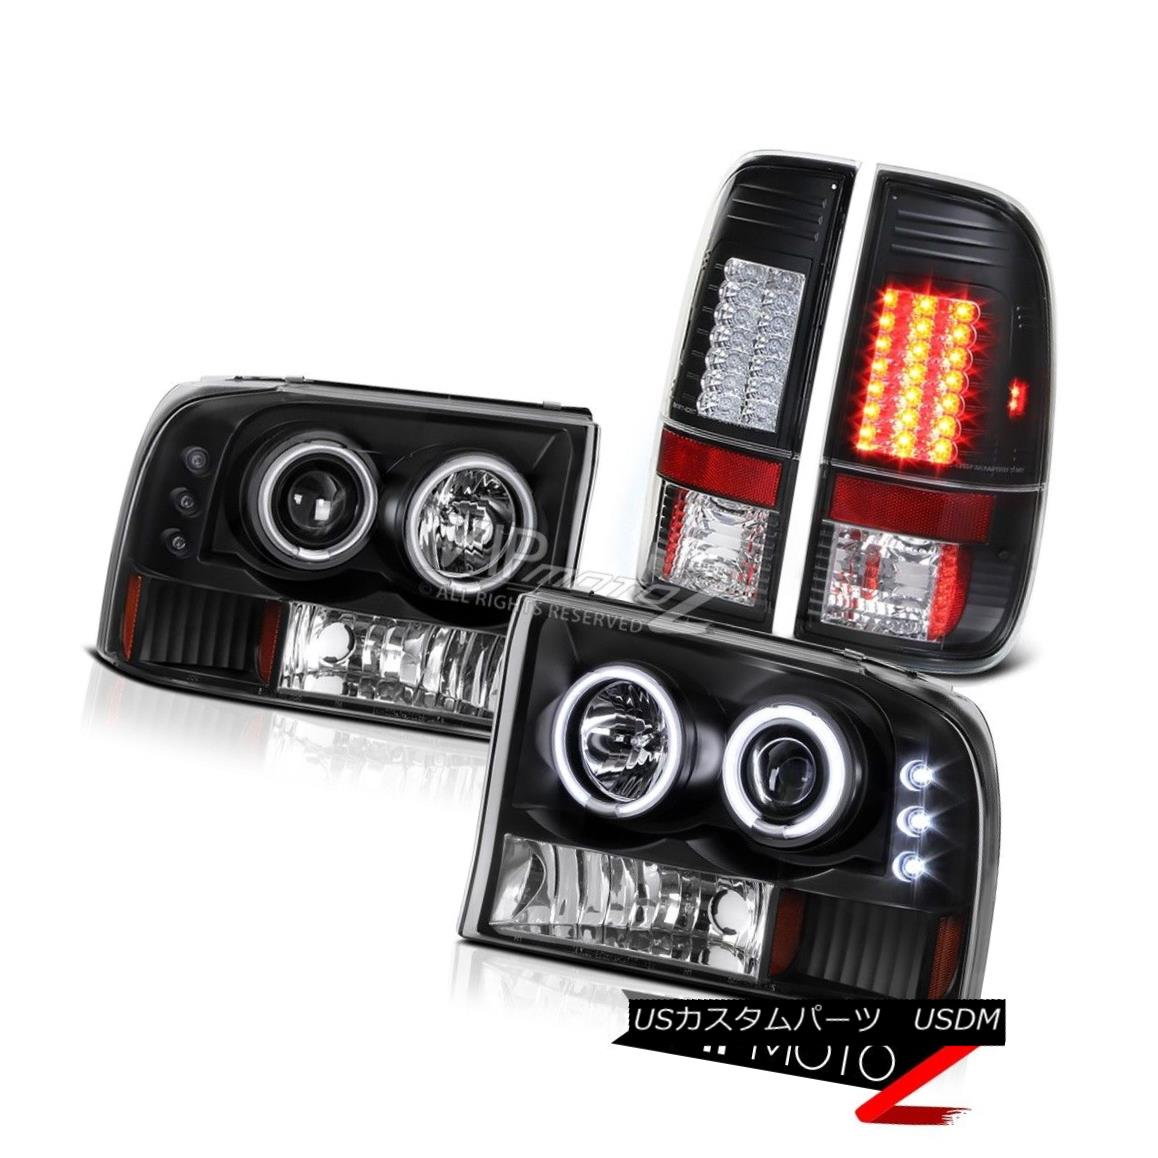 ヘッドライト Black 1PC HaLo Projector {CCFL} Headlight+LED Tail Light 99-04 Ford F250/F350 V8 ブラック1PCハロープロジェクター(CCFL)ヘッドライト+ LEDテールライト99-04 Ford F250 / F350 V8